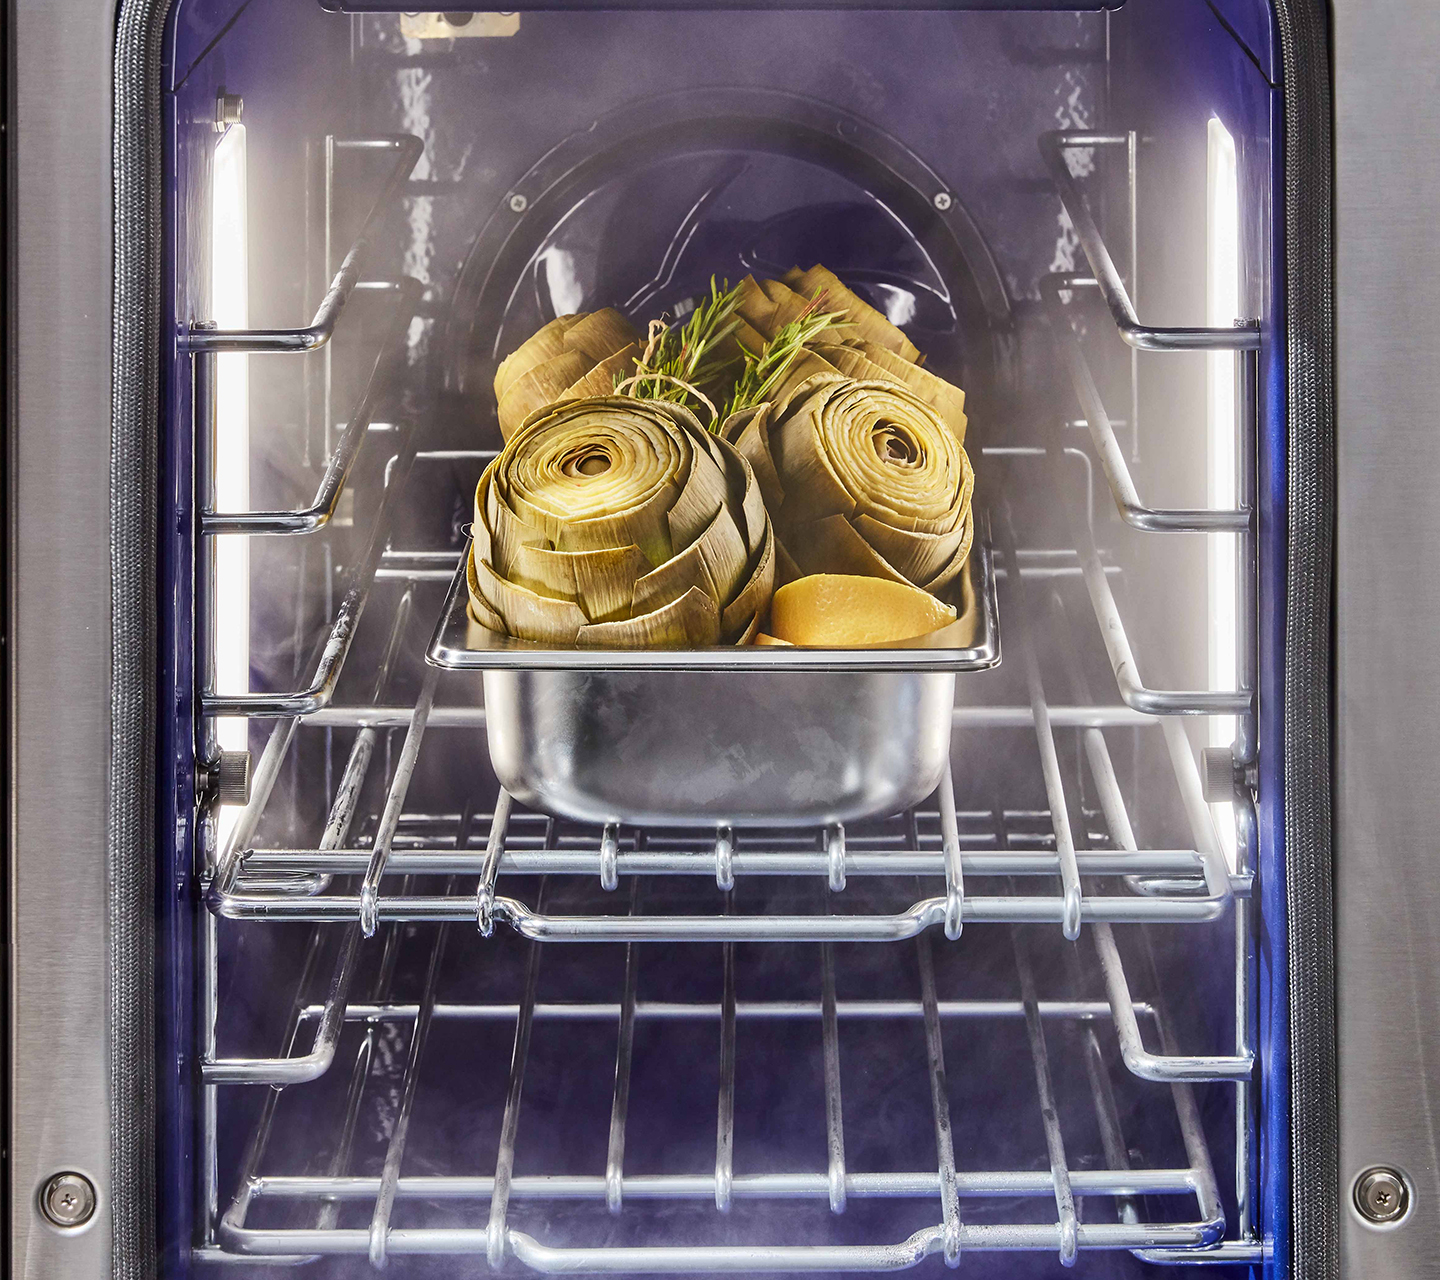 Steam Assist Convection Oven on Dual Fuel Pro Range from Signature Kitchen Suite